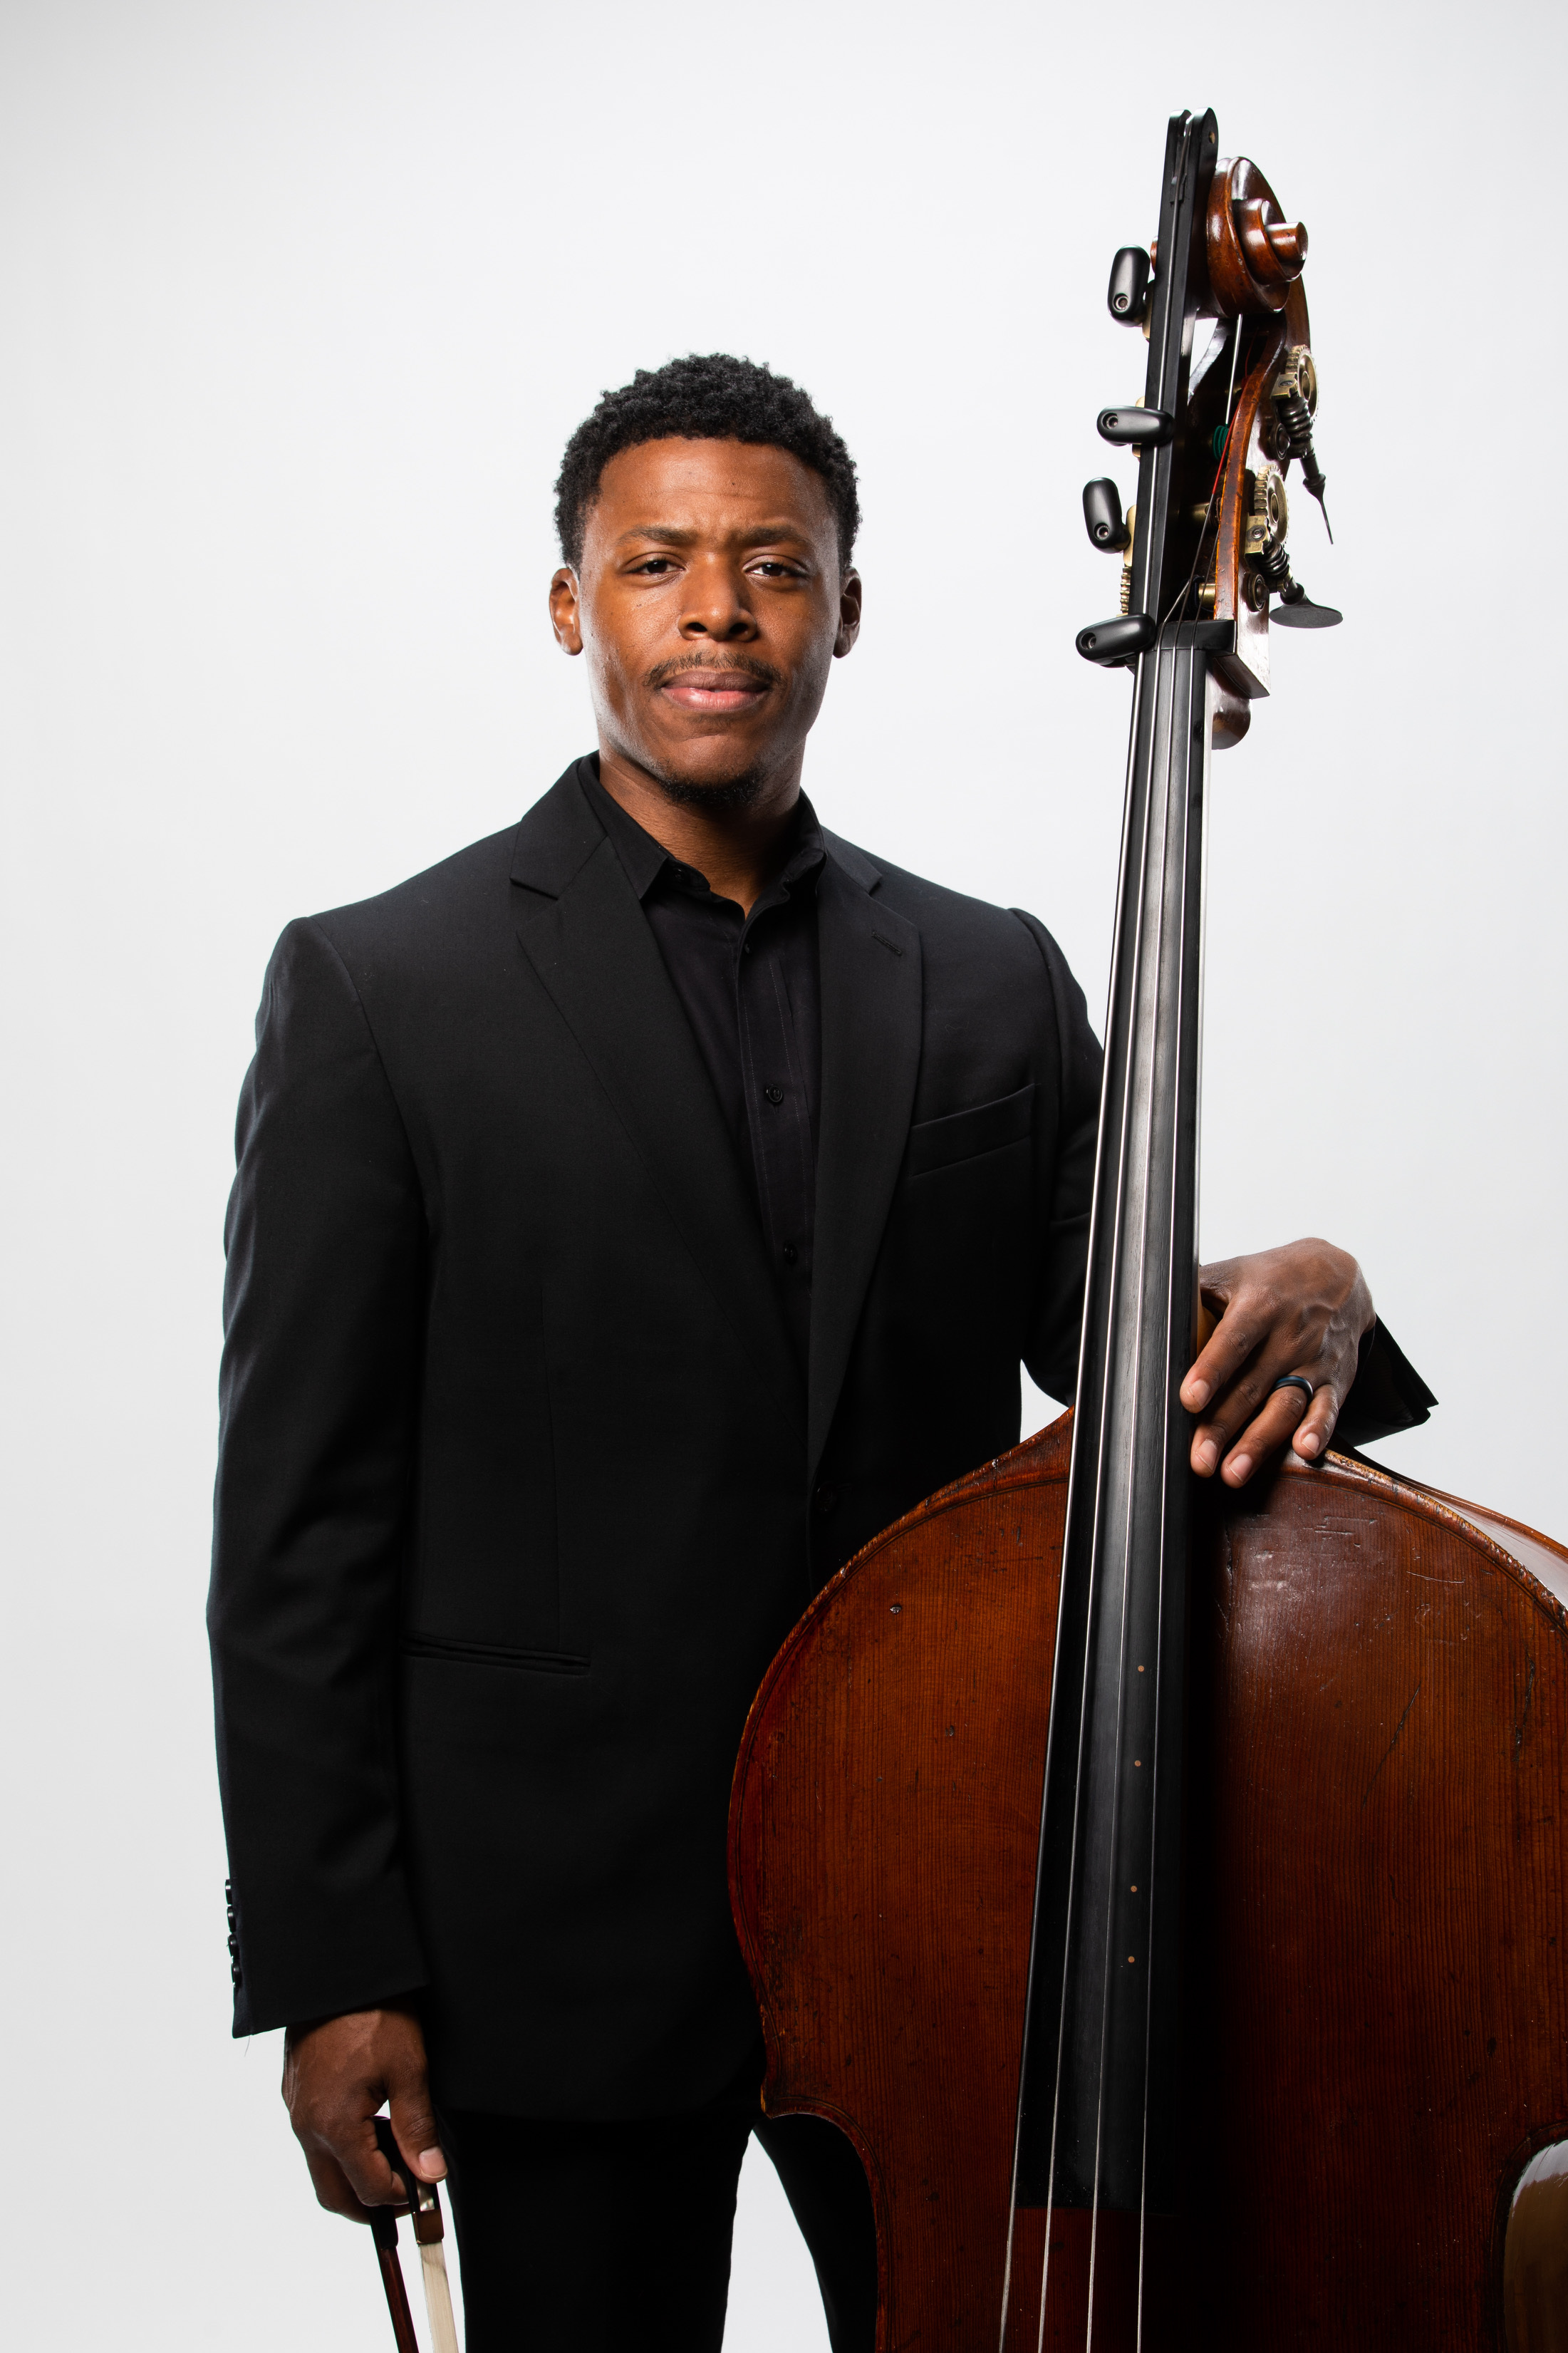 Ian Saunders - Double Bass - A multi-faceted musician, Ian Saunders enjoys an exciting career as a sought-after bassist and educator. The Virginia native began his studies with Christopher White, principal bassist of the Virginia Symphony, in his hometown of Norfolk. Within a year he received his first major scholarship from R&B legend Ben E. King. Saunders completed his bachelor's degree under the tutelage of renowned bassist Robert Nairn at the Pennsylvania State University. Saunders continued his graduate studies under Nairn while fulfilling numerous professional engagements.In 2016, he received his doctorate from the University of Maryland while studying with Robert Oppelt, principal bassist of the National Symphony Orchestra. Soon after graduation, Saunders was accepted into the prestigious Diversity Fellowship program with the Cincinnati Symphony Orchestra and Cincinnati College-Conservatory of Music in the Fall of 2017.